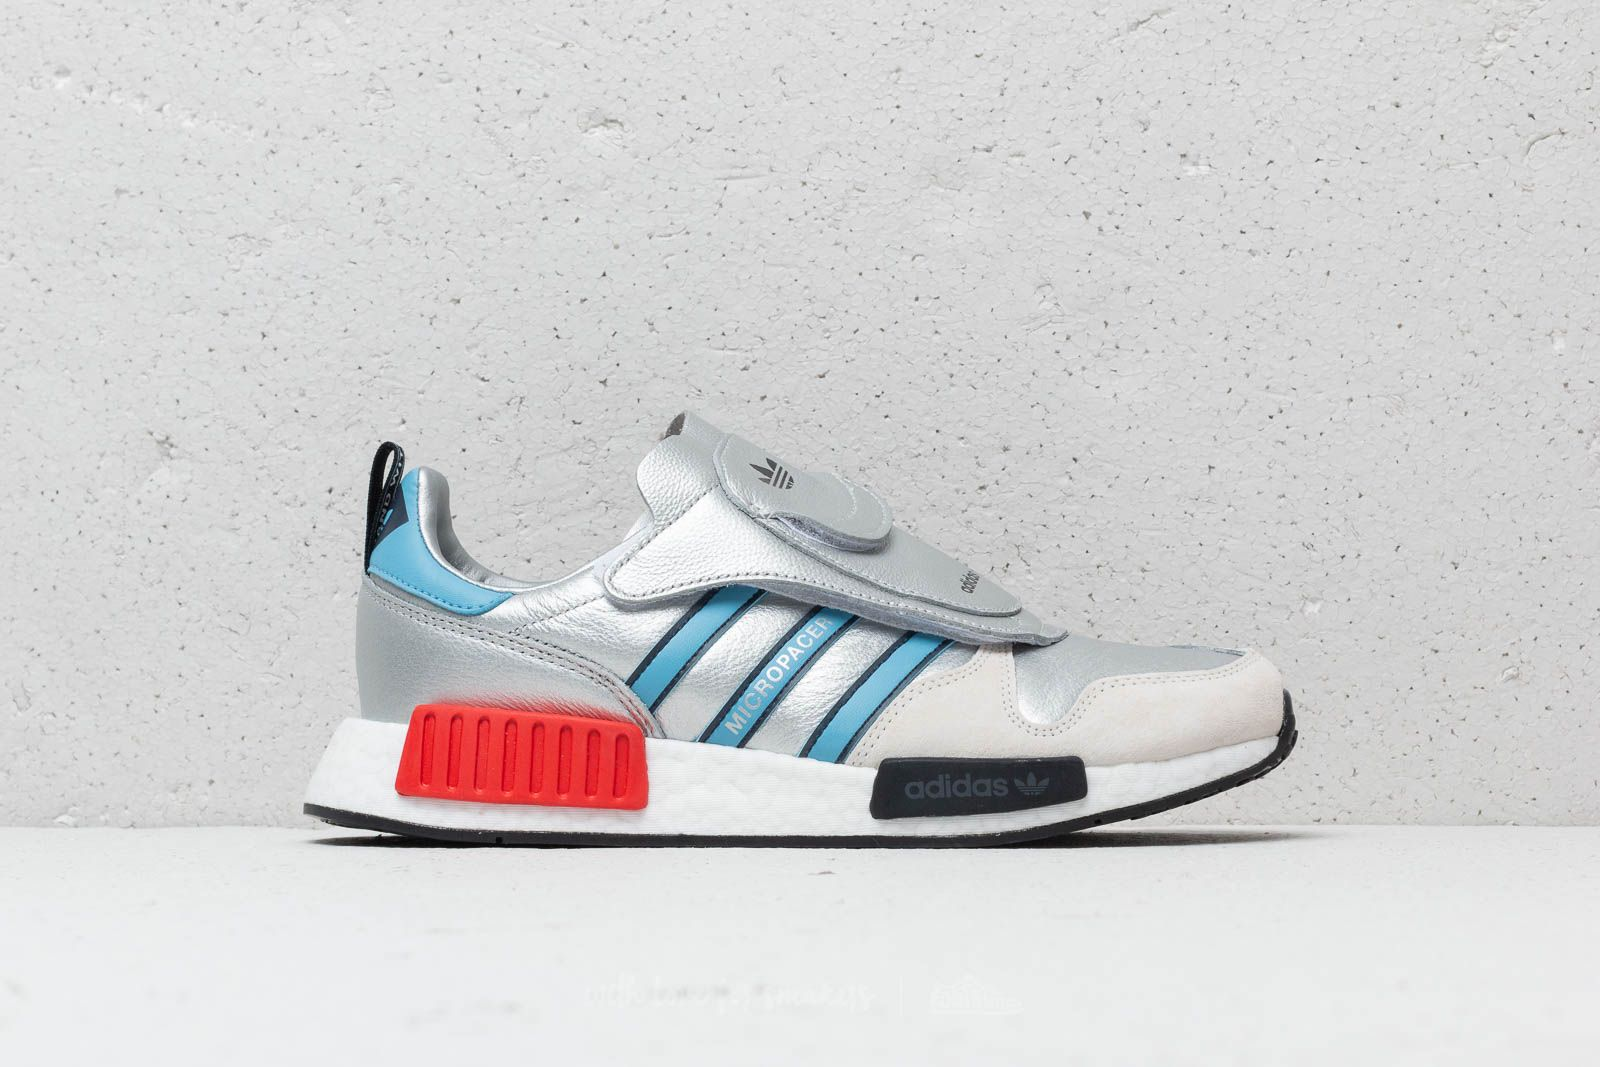 5970f0bbbafa7 adidas Micropacer x R1 Silver Metallic  Light Blue  Ftw White at a great  price